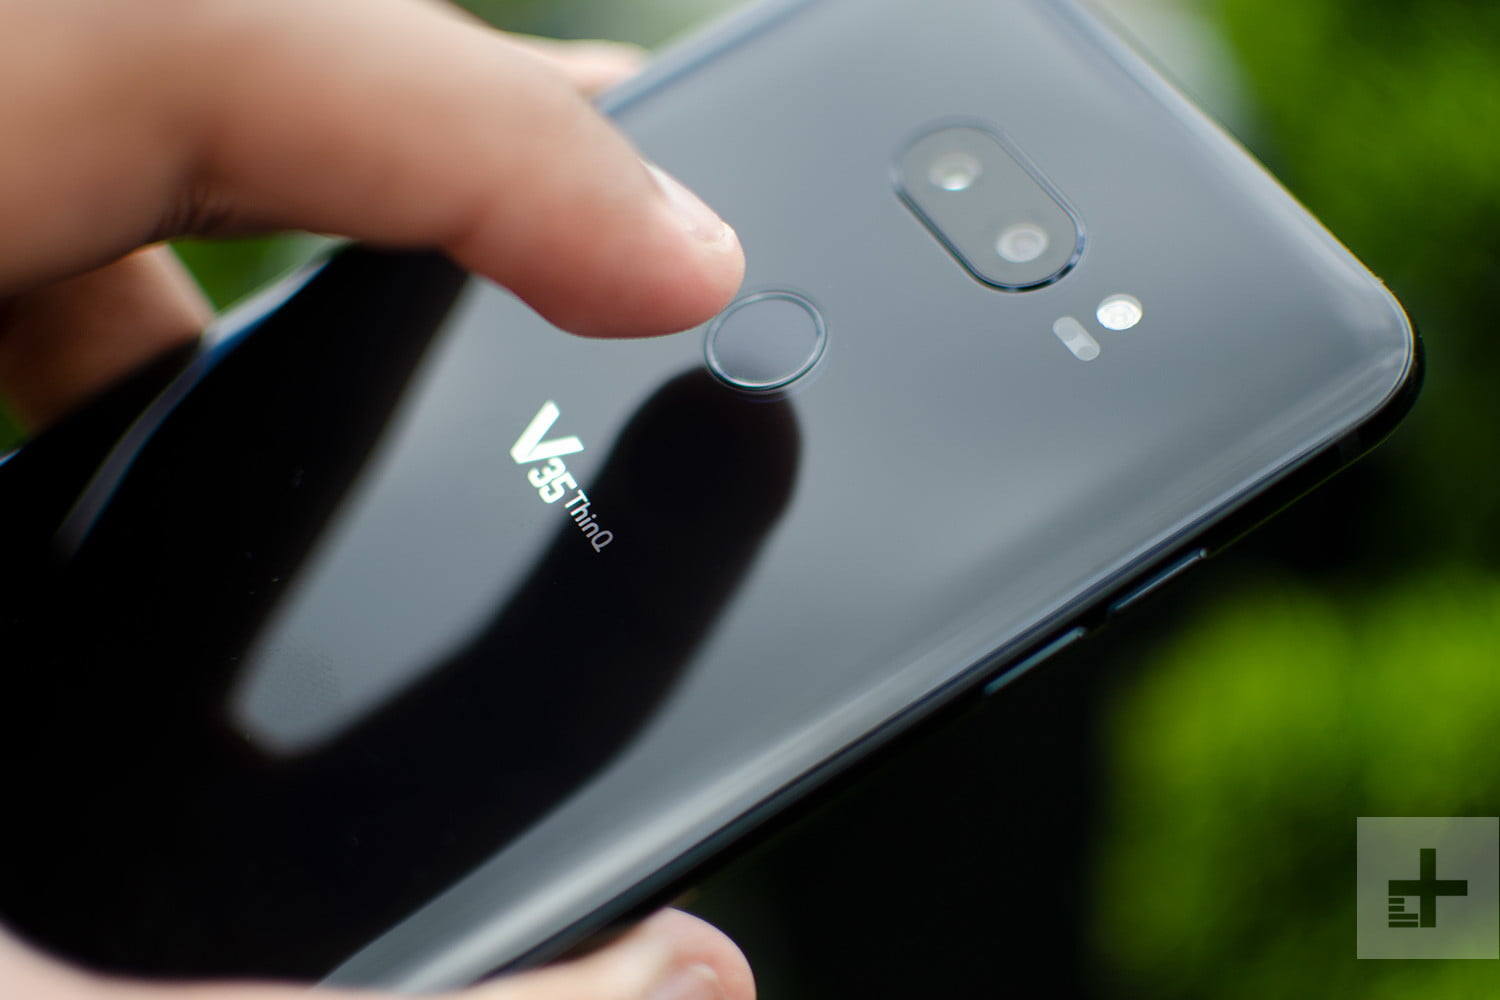 LG V35 ThinQ: Everything You Need to Know About LG's Latest